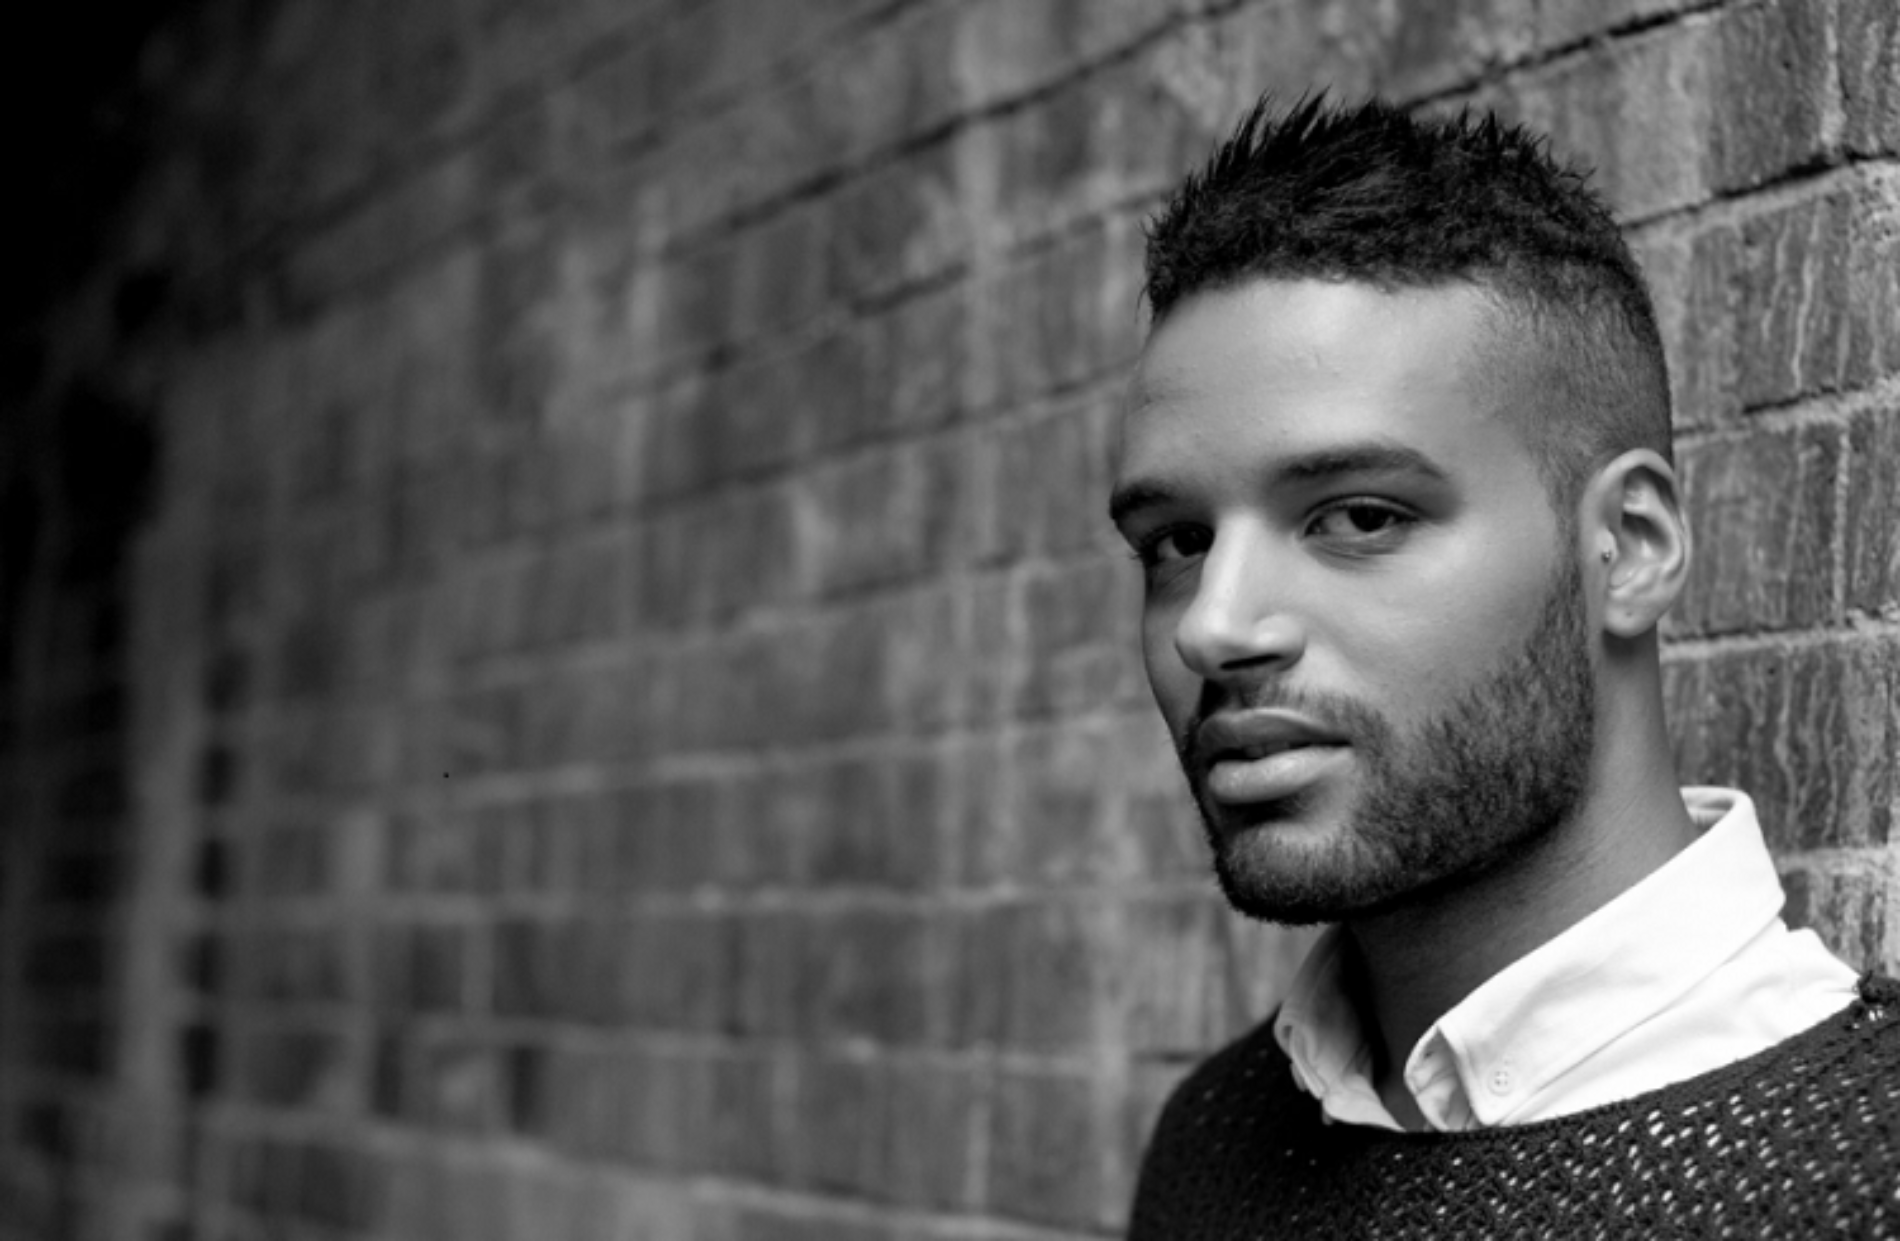 'Promiscuous Gay Guys Give Our Community A Bad Name!' Linford Martin Writes